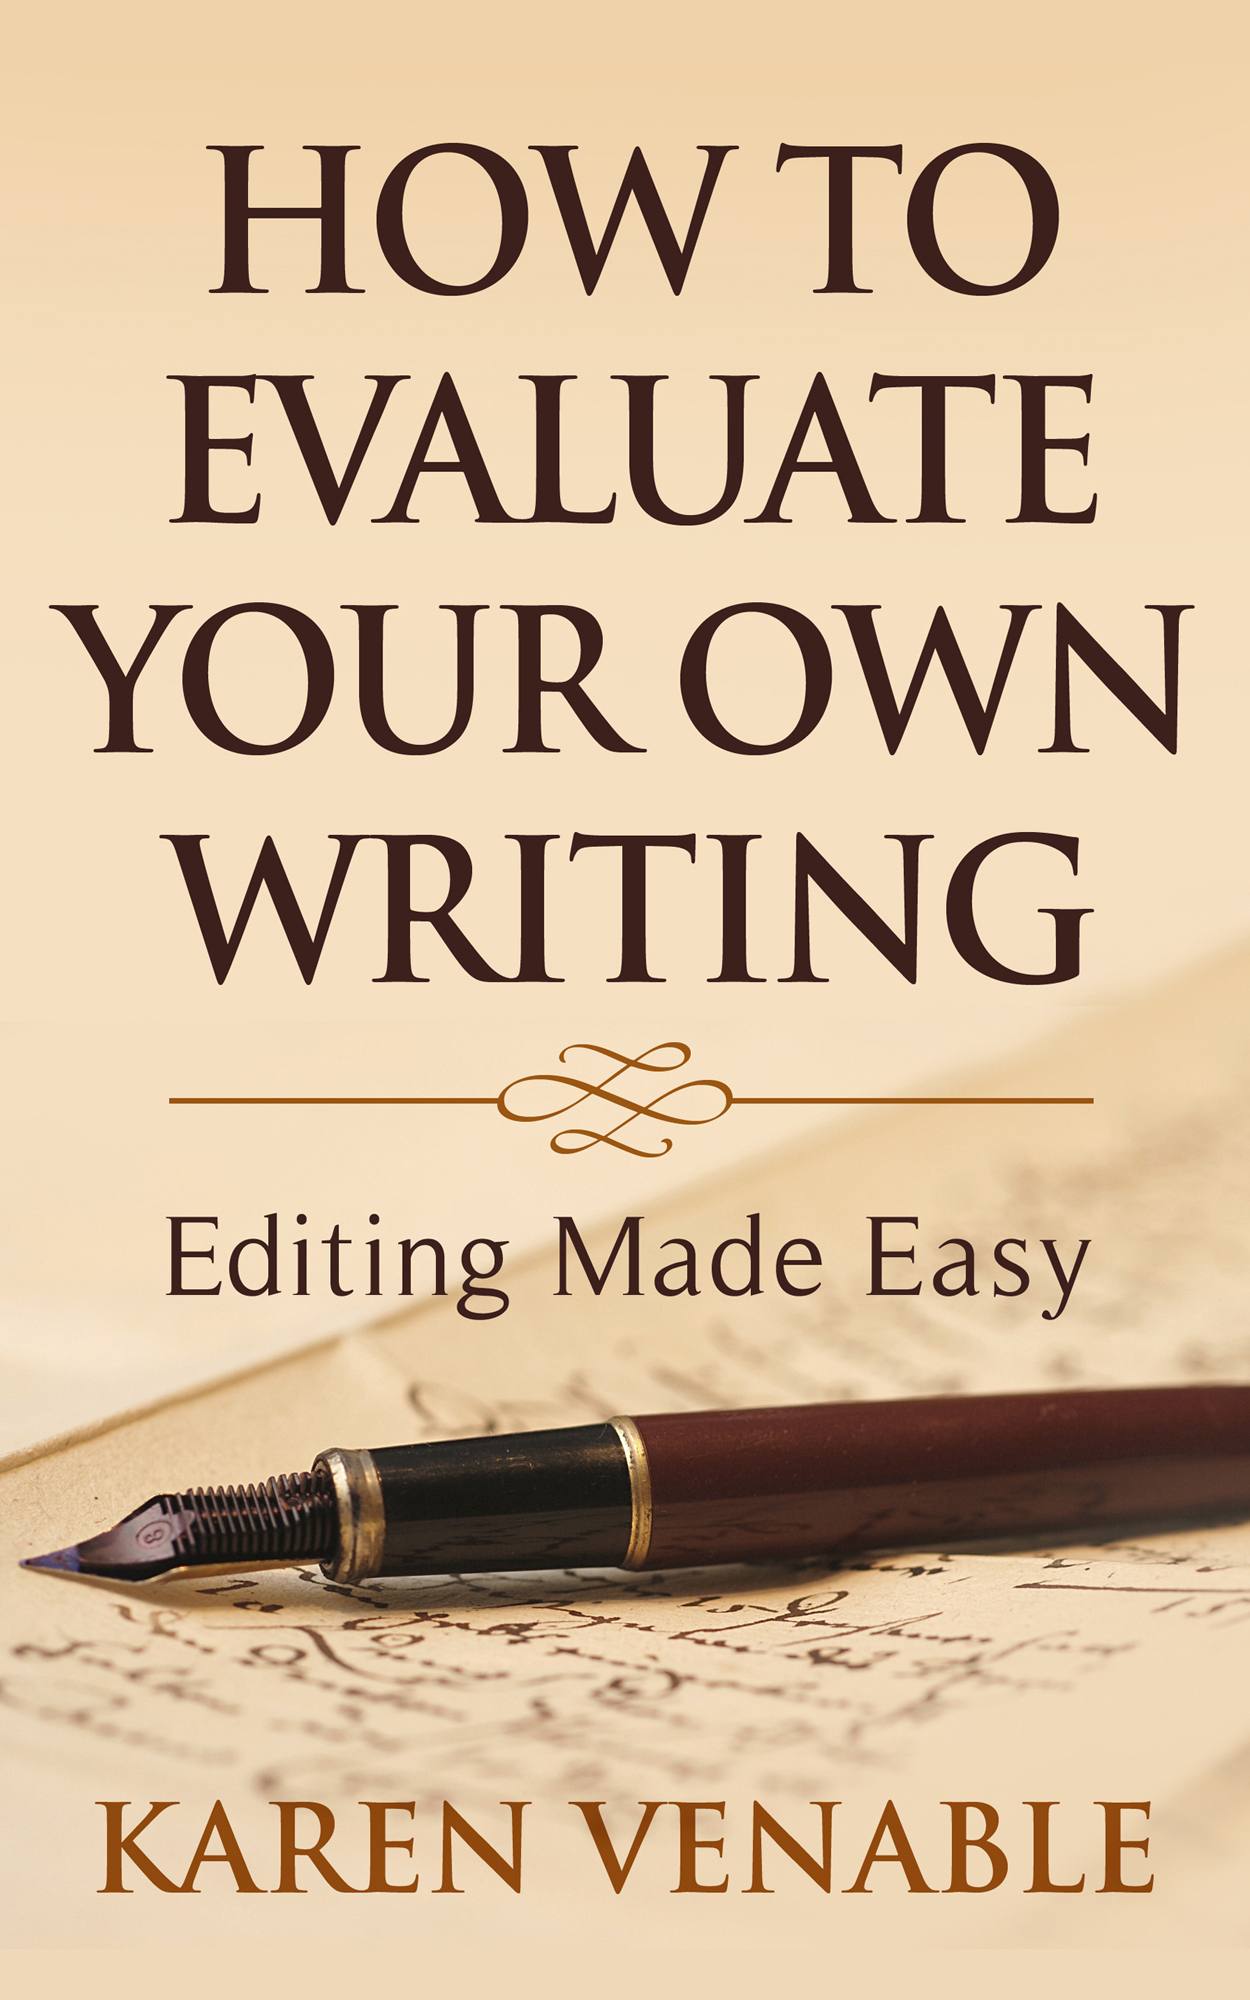 How to Evaluate Your Own Writing